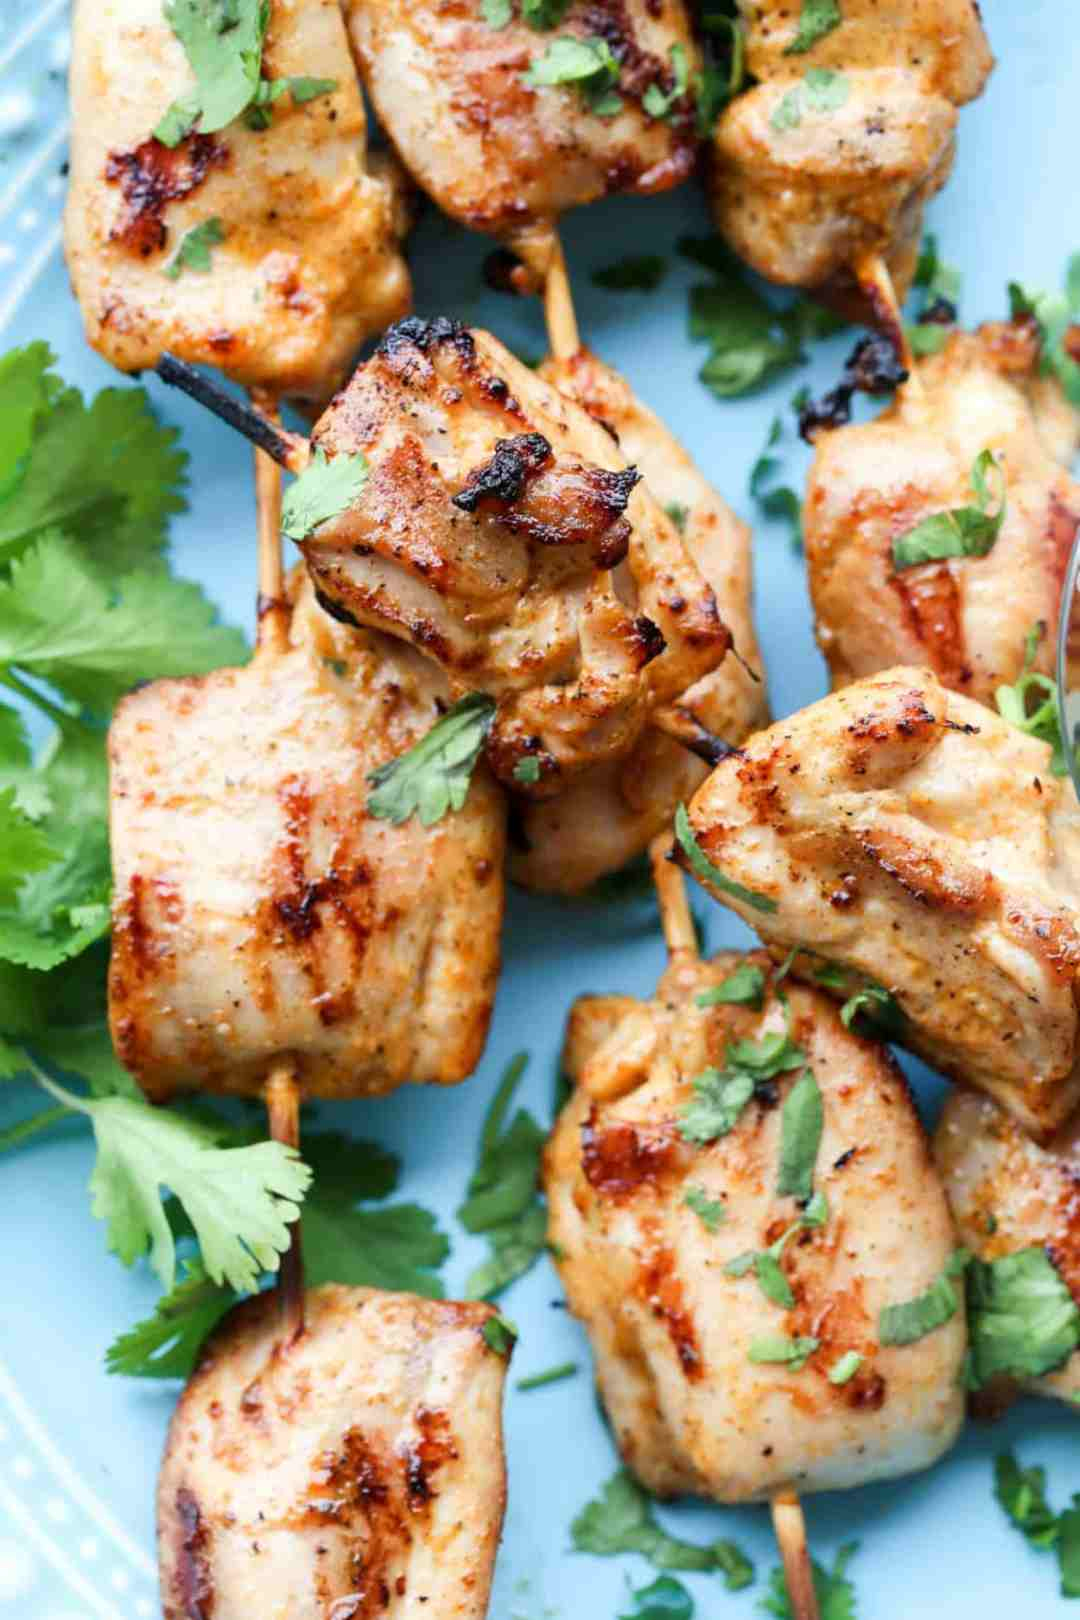 A close up of Grilled Buffalo Ranch Chicken on skewers, topped with fresh cilantro.